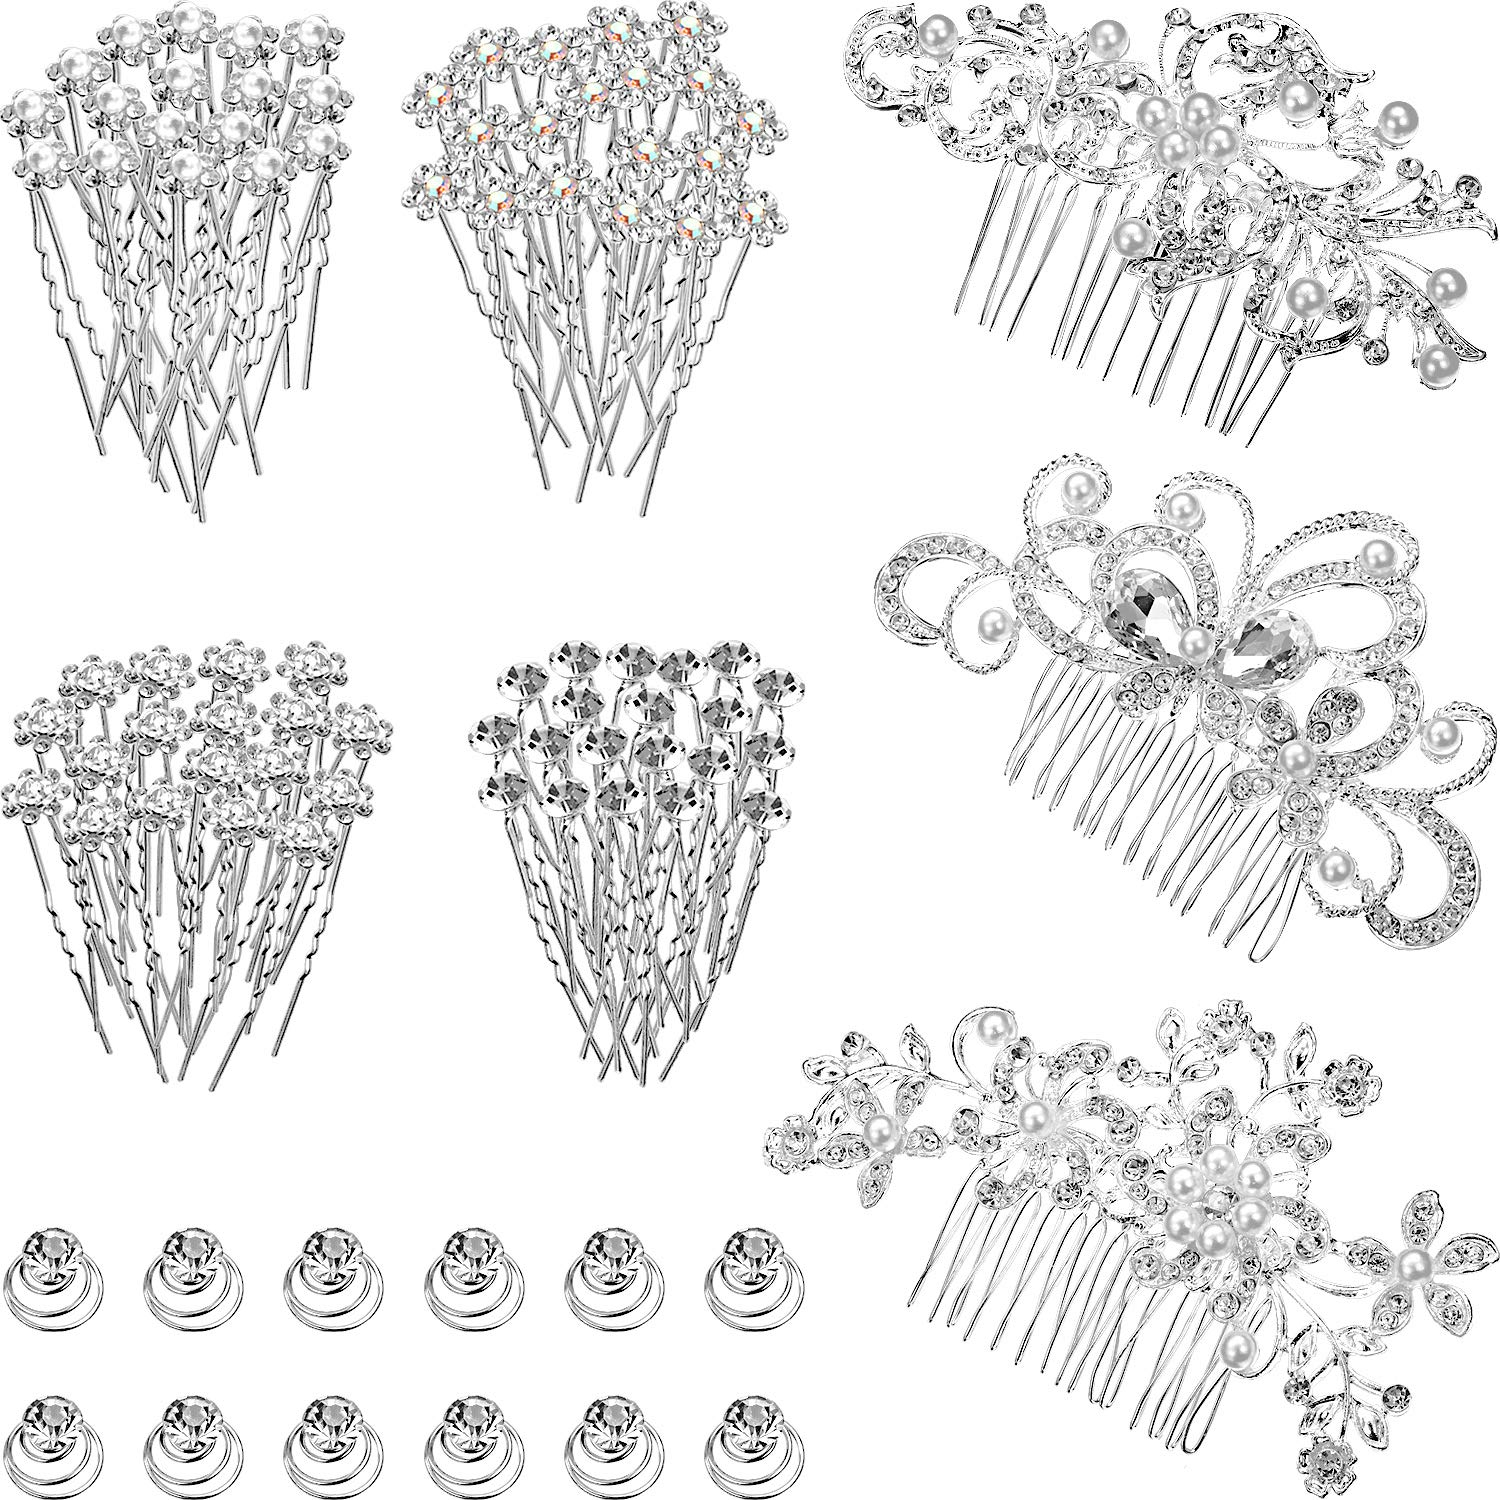 55 Pieces Wedding Bridal Hair Pins Crystal Pearl Hair Barrettes Flower Spiral Hair Clips Women Hair Side Comb for Brides Bridesmaids by WILLBOND